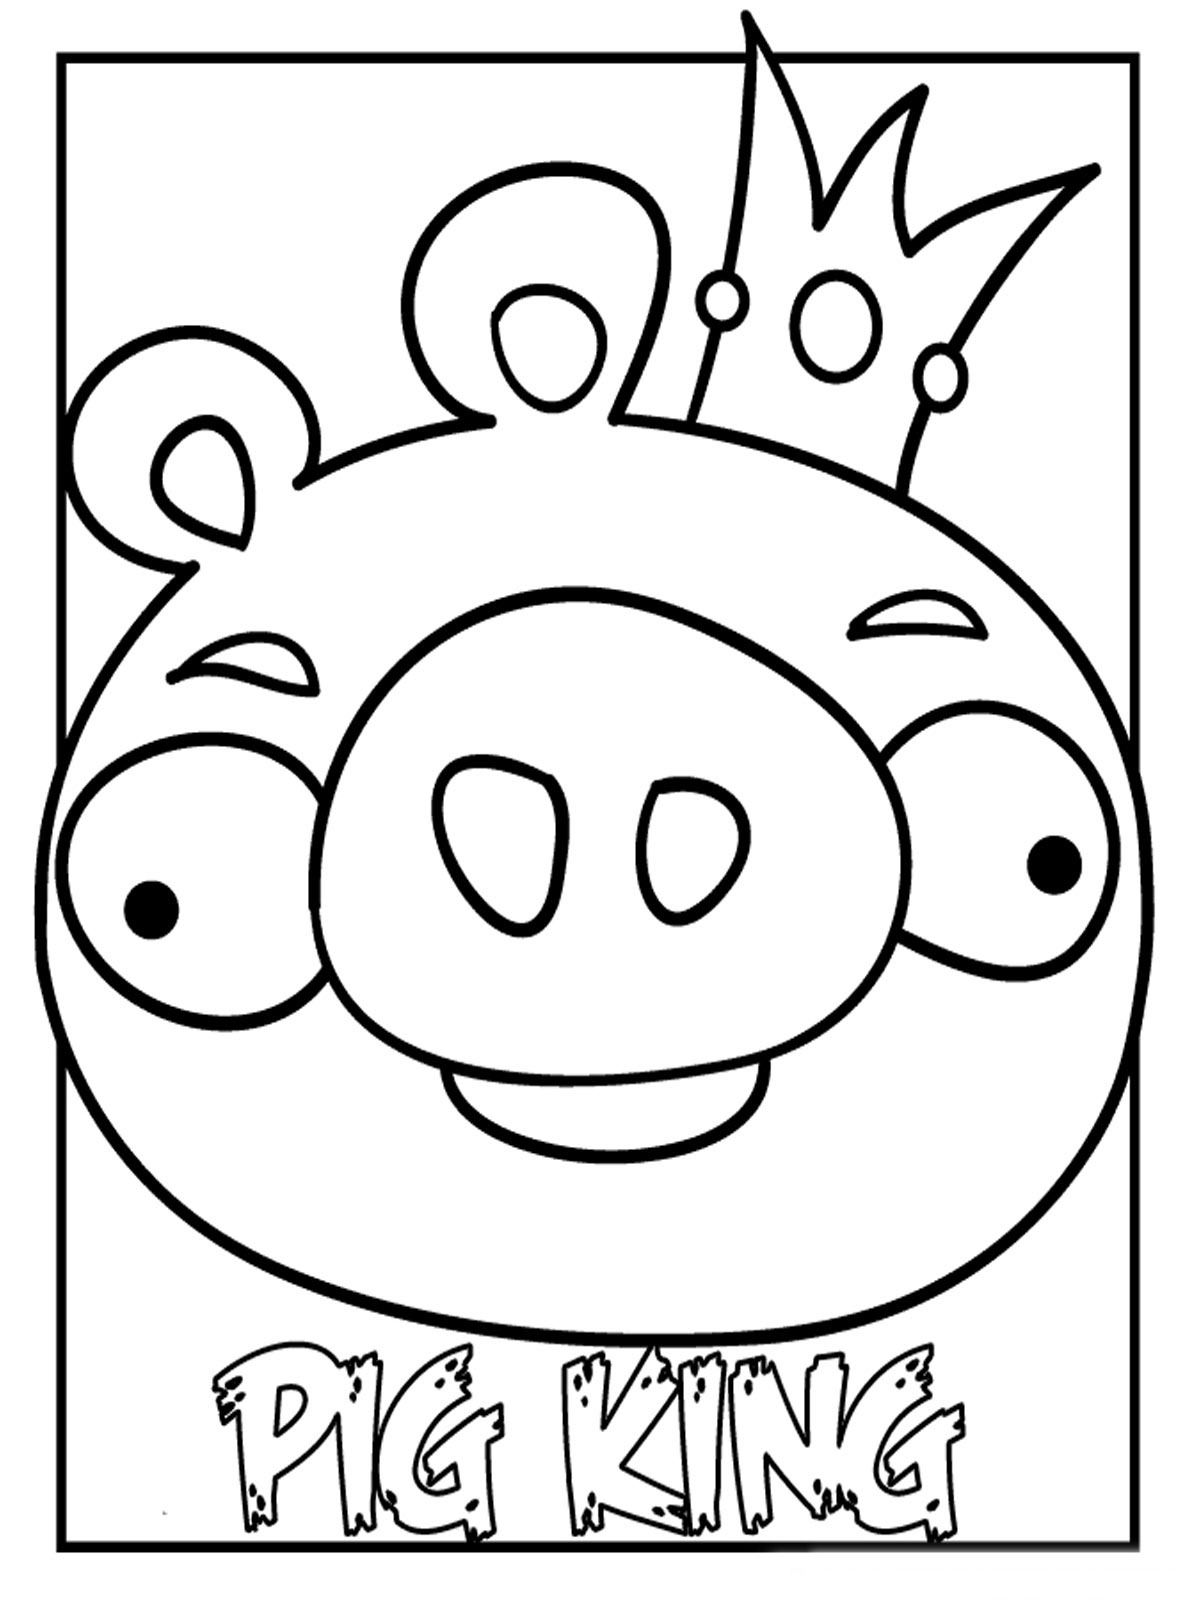 king pig coloring page 35 elegant photos of angry birds pig coloring page page pig king coloring